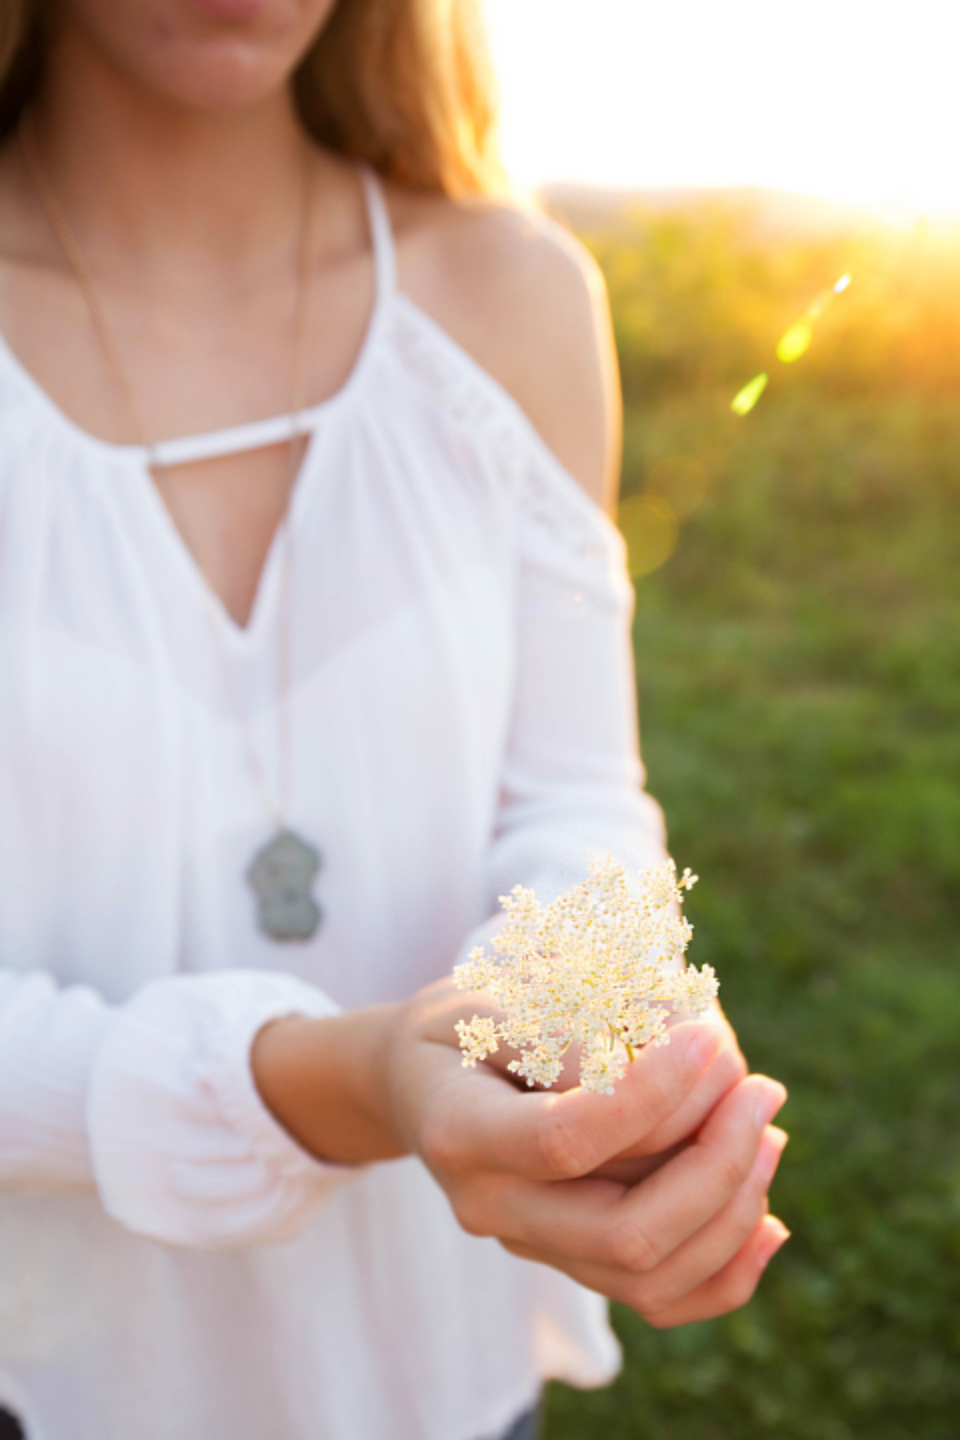 woman holding flowers lady female bouquet flora garden fresh nature outdoors person pretty beautiful summer style sunlight bokeh